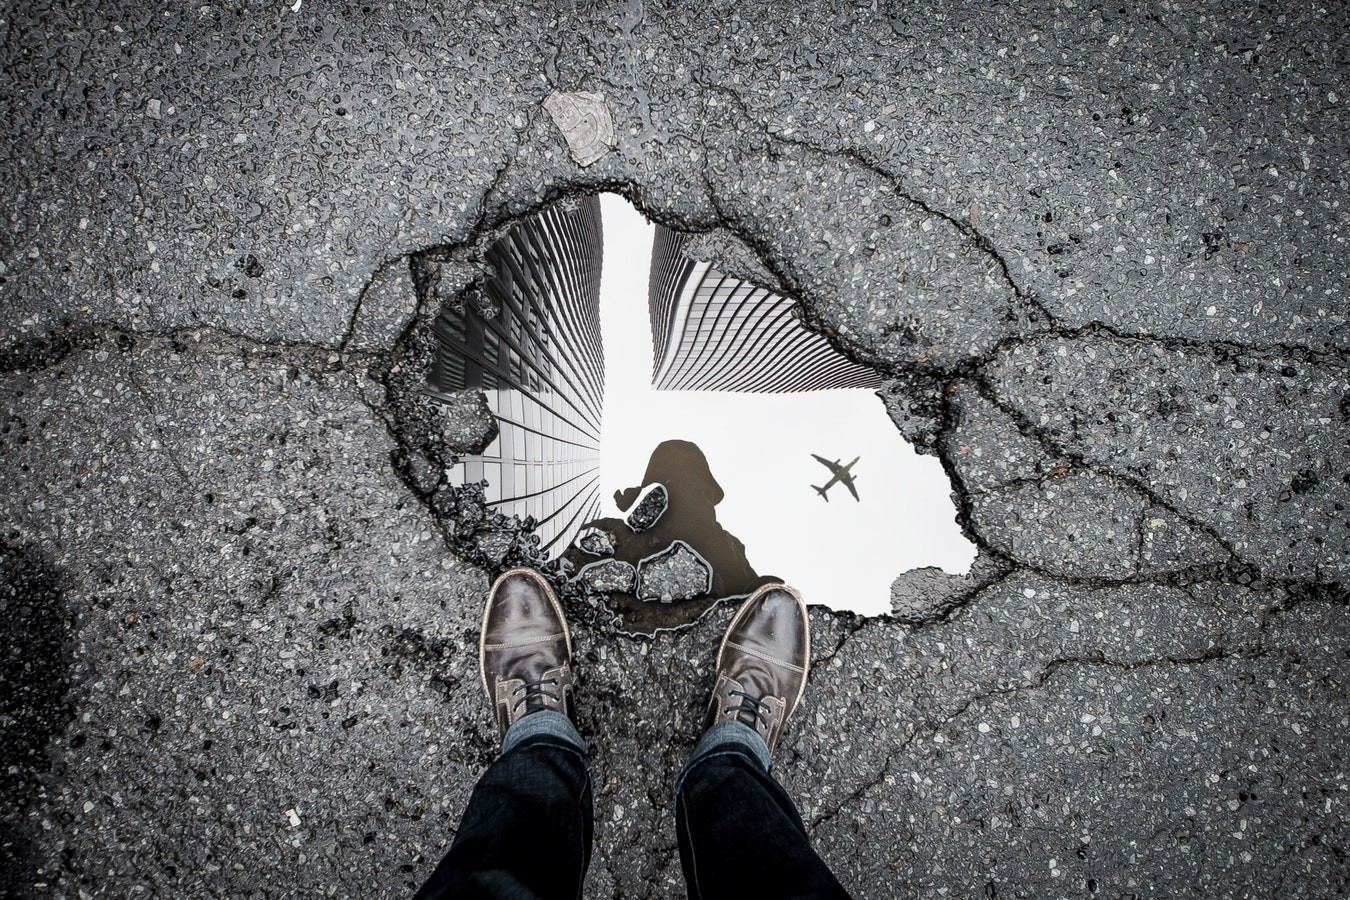 picture of a puddle